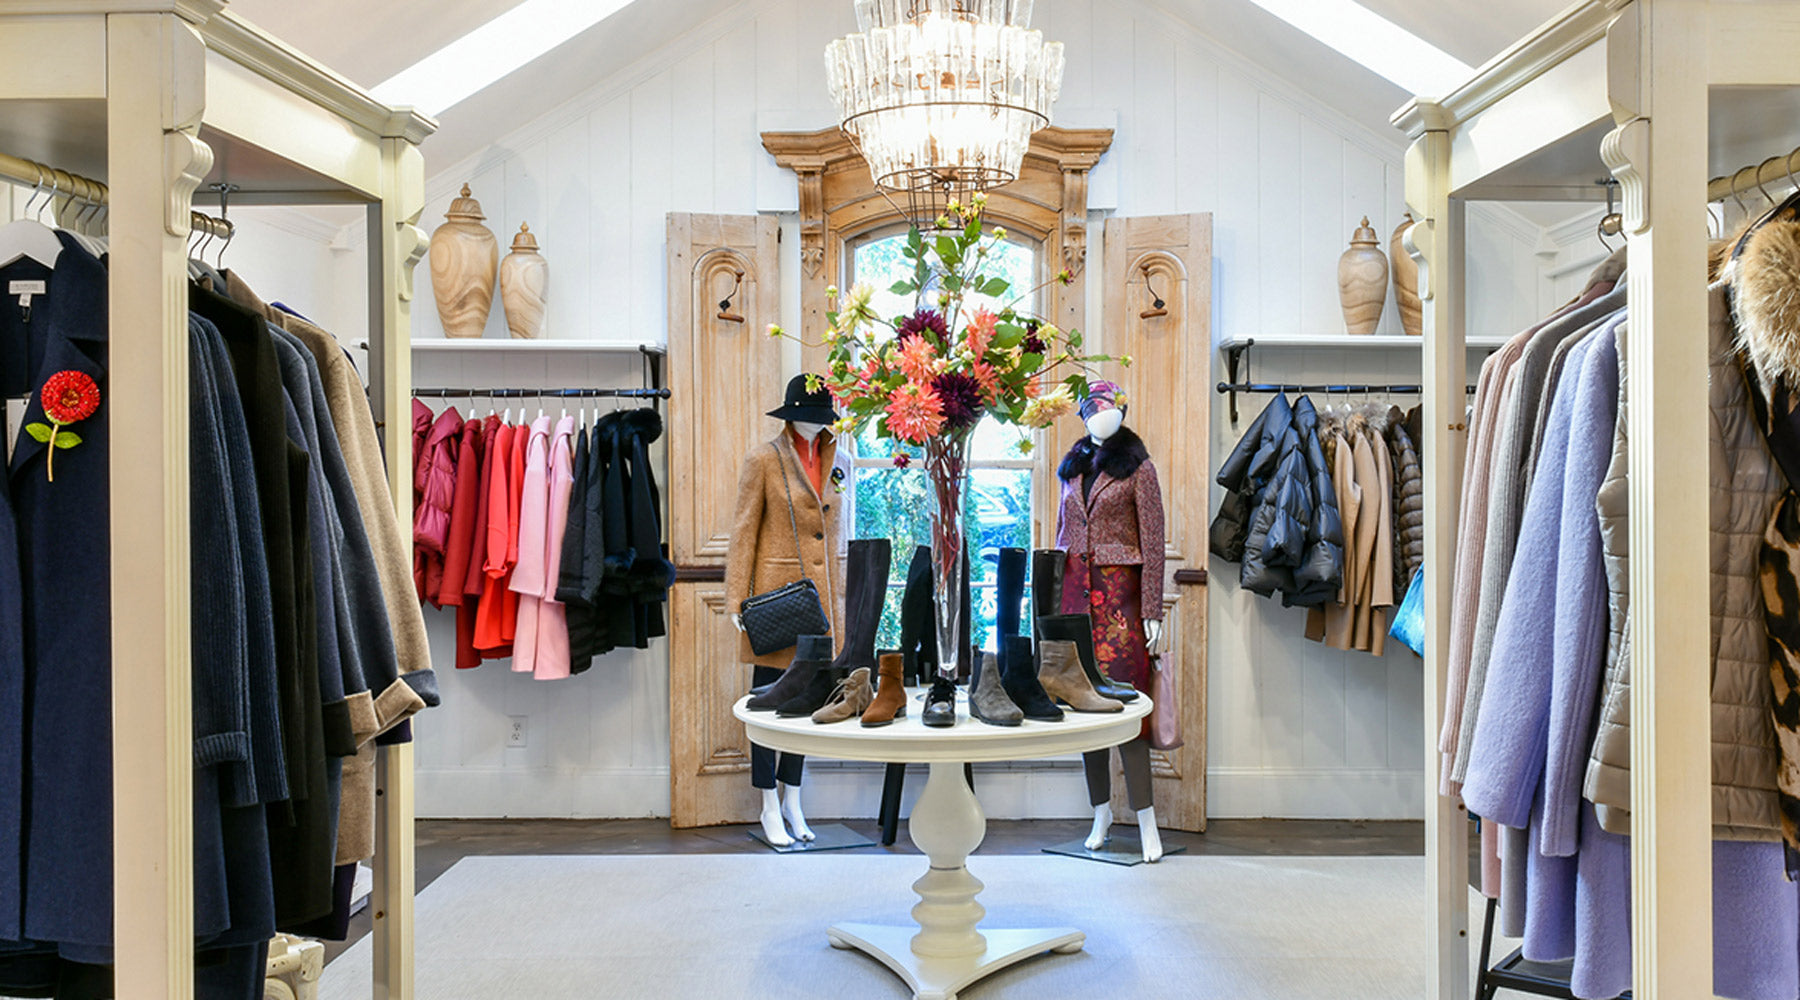 Dovecote shop interior with clothes and accessories